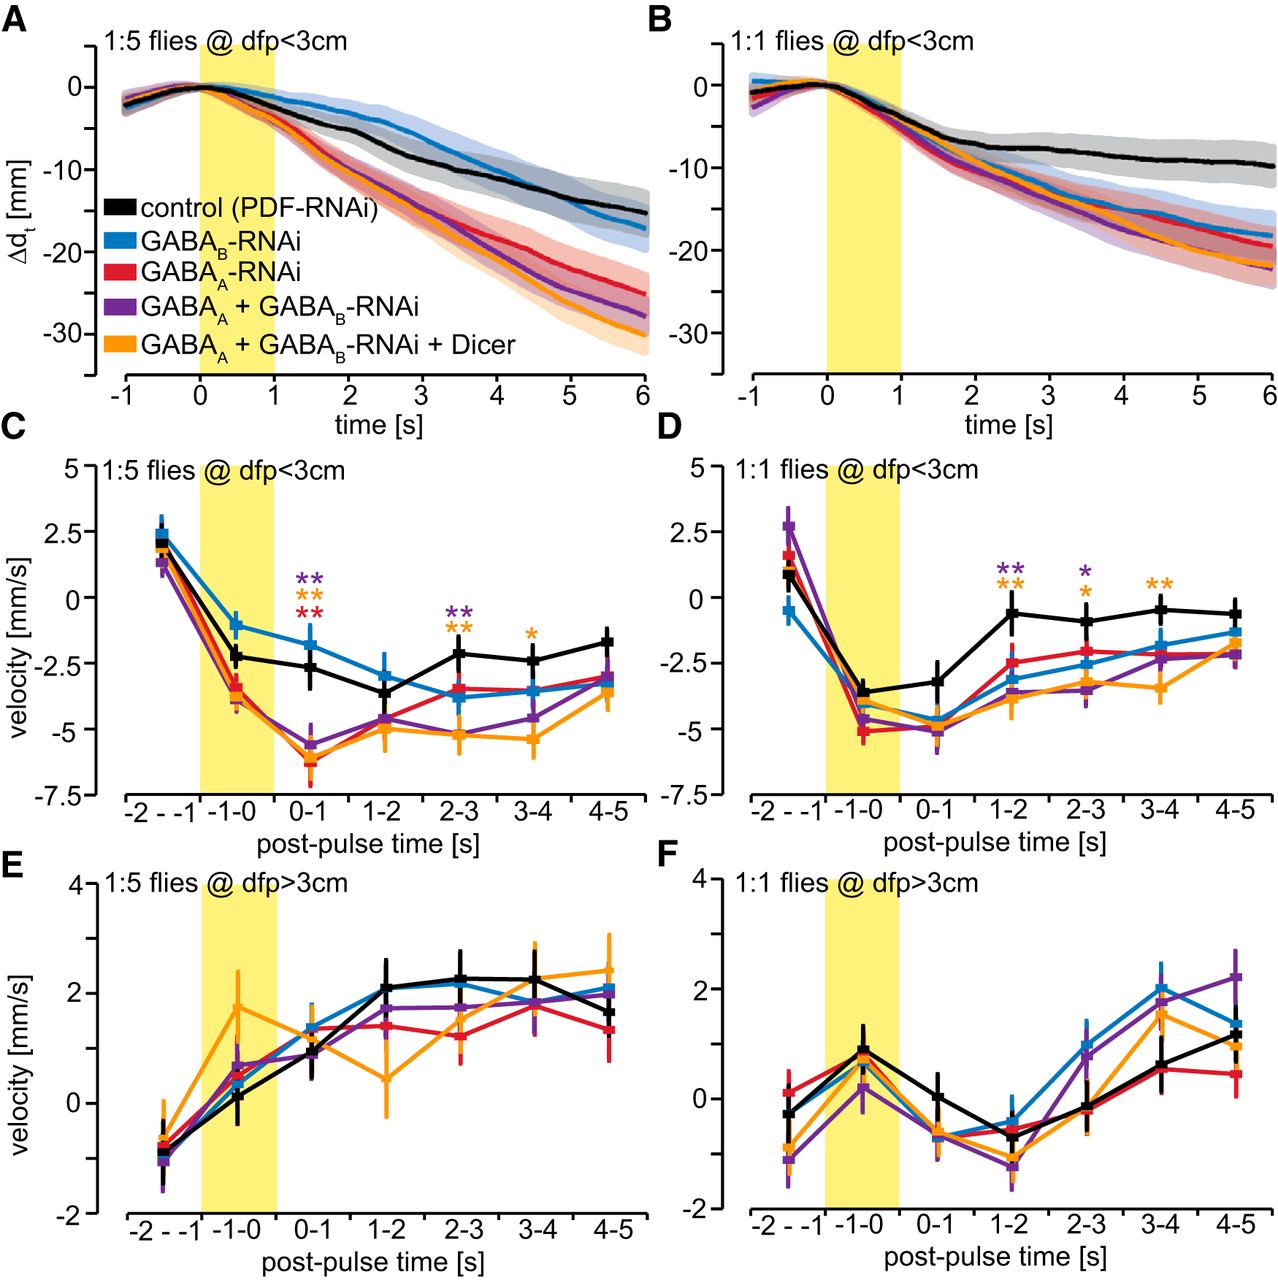 Presynaptic Gaba Receptors Mediate Temporal Contrast Enhancement In Post Back With Questions Obviously Since Your Wiring Has Been Altered Download Figure